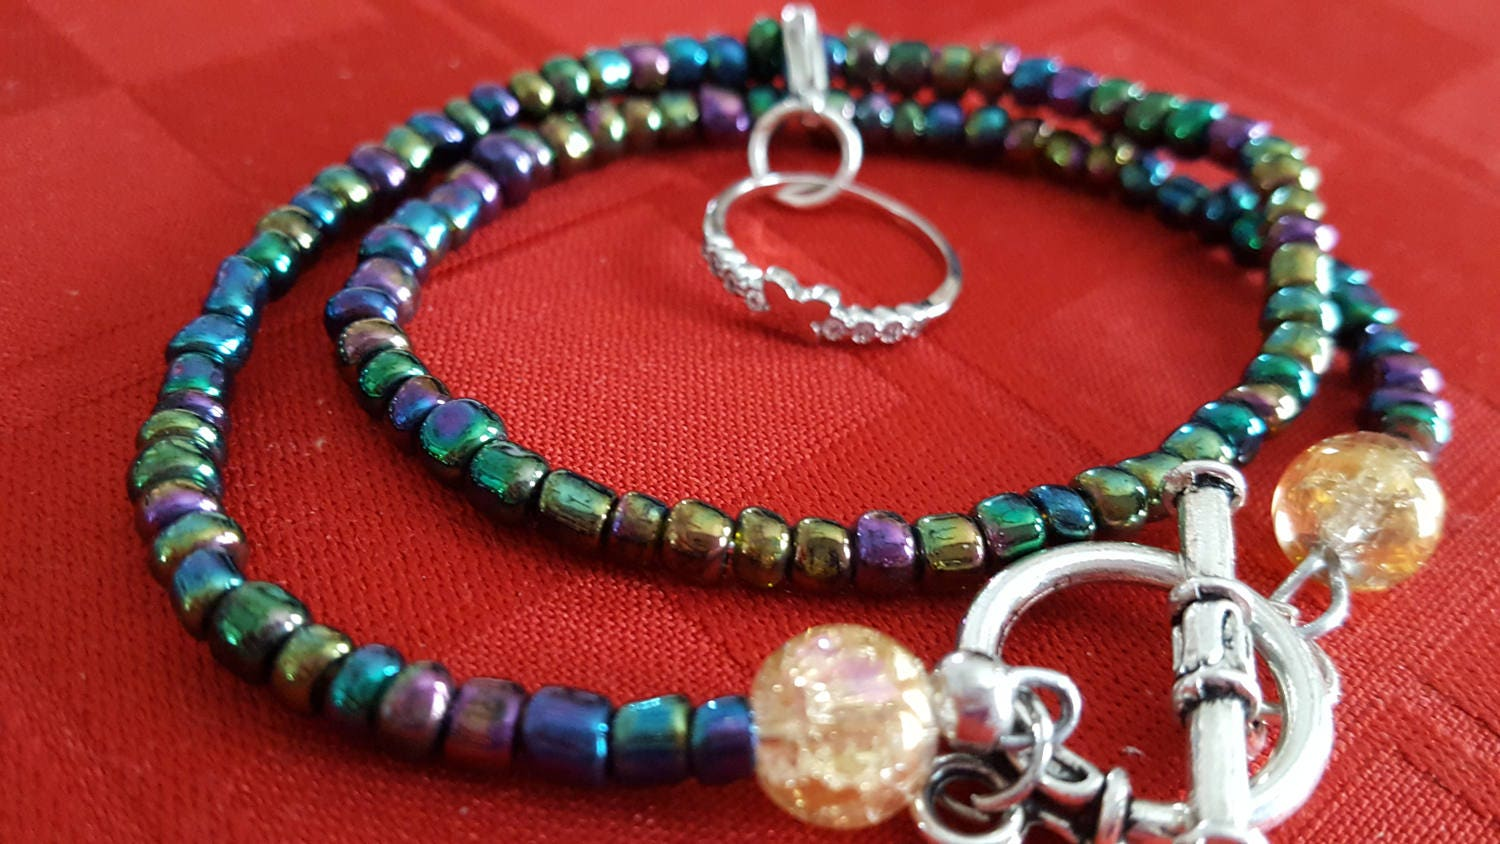 Necklace With Friendship Ring Charm